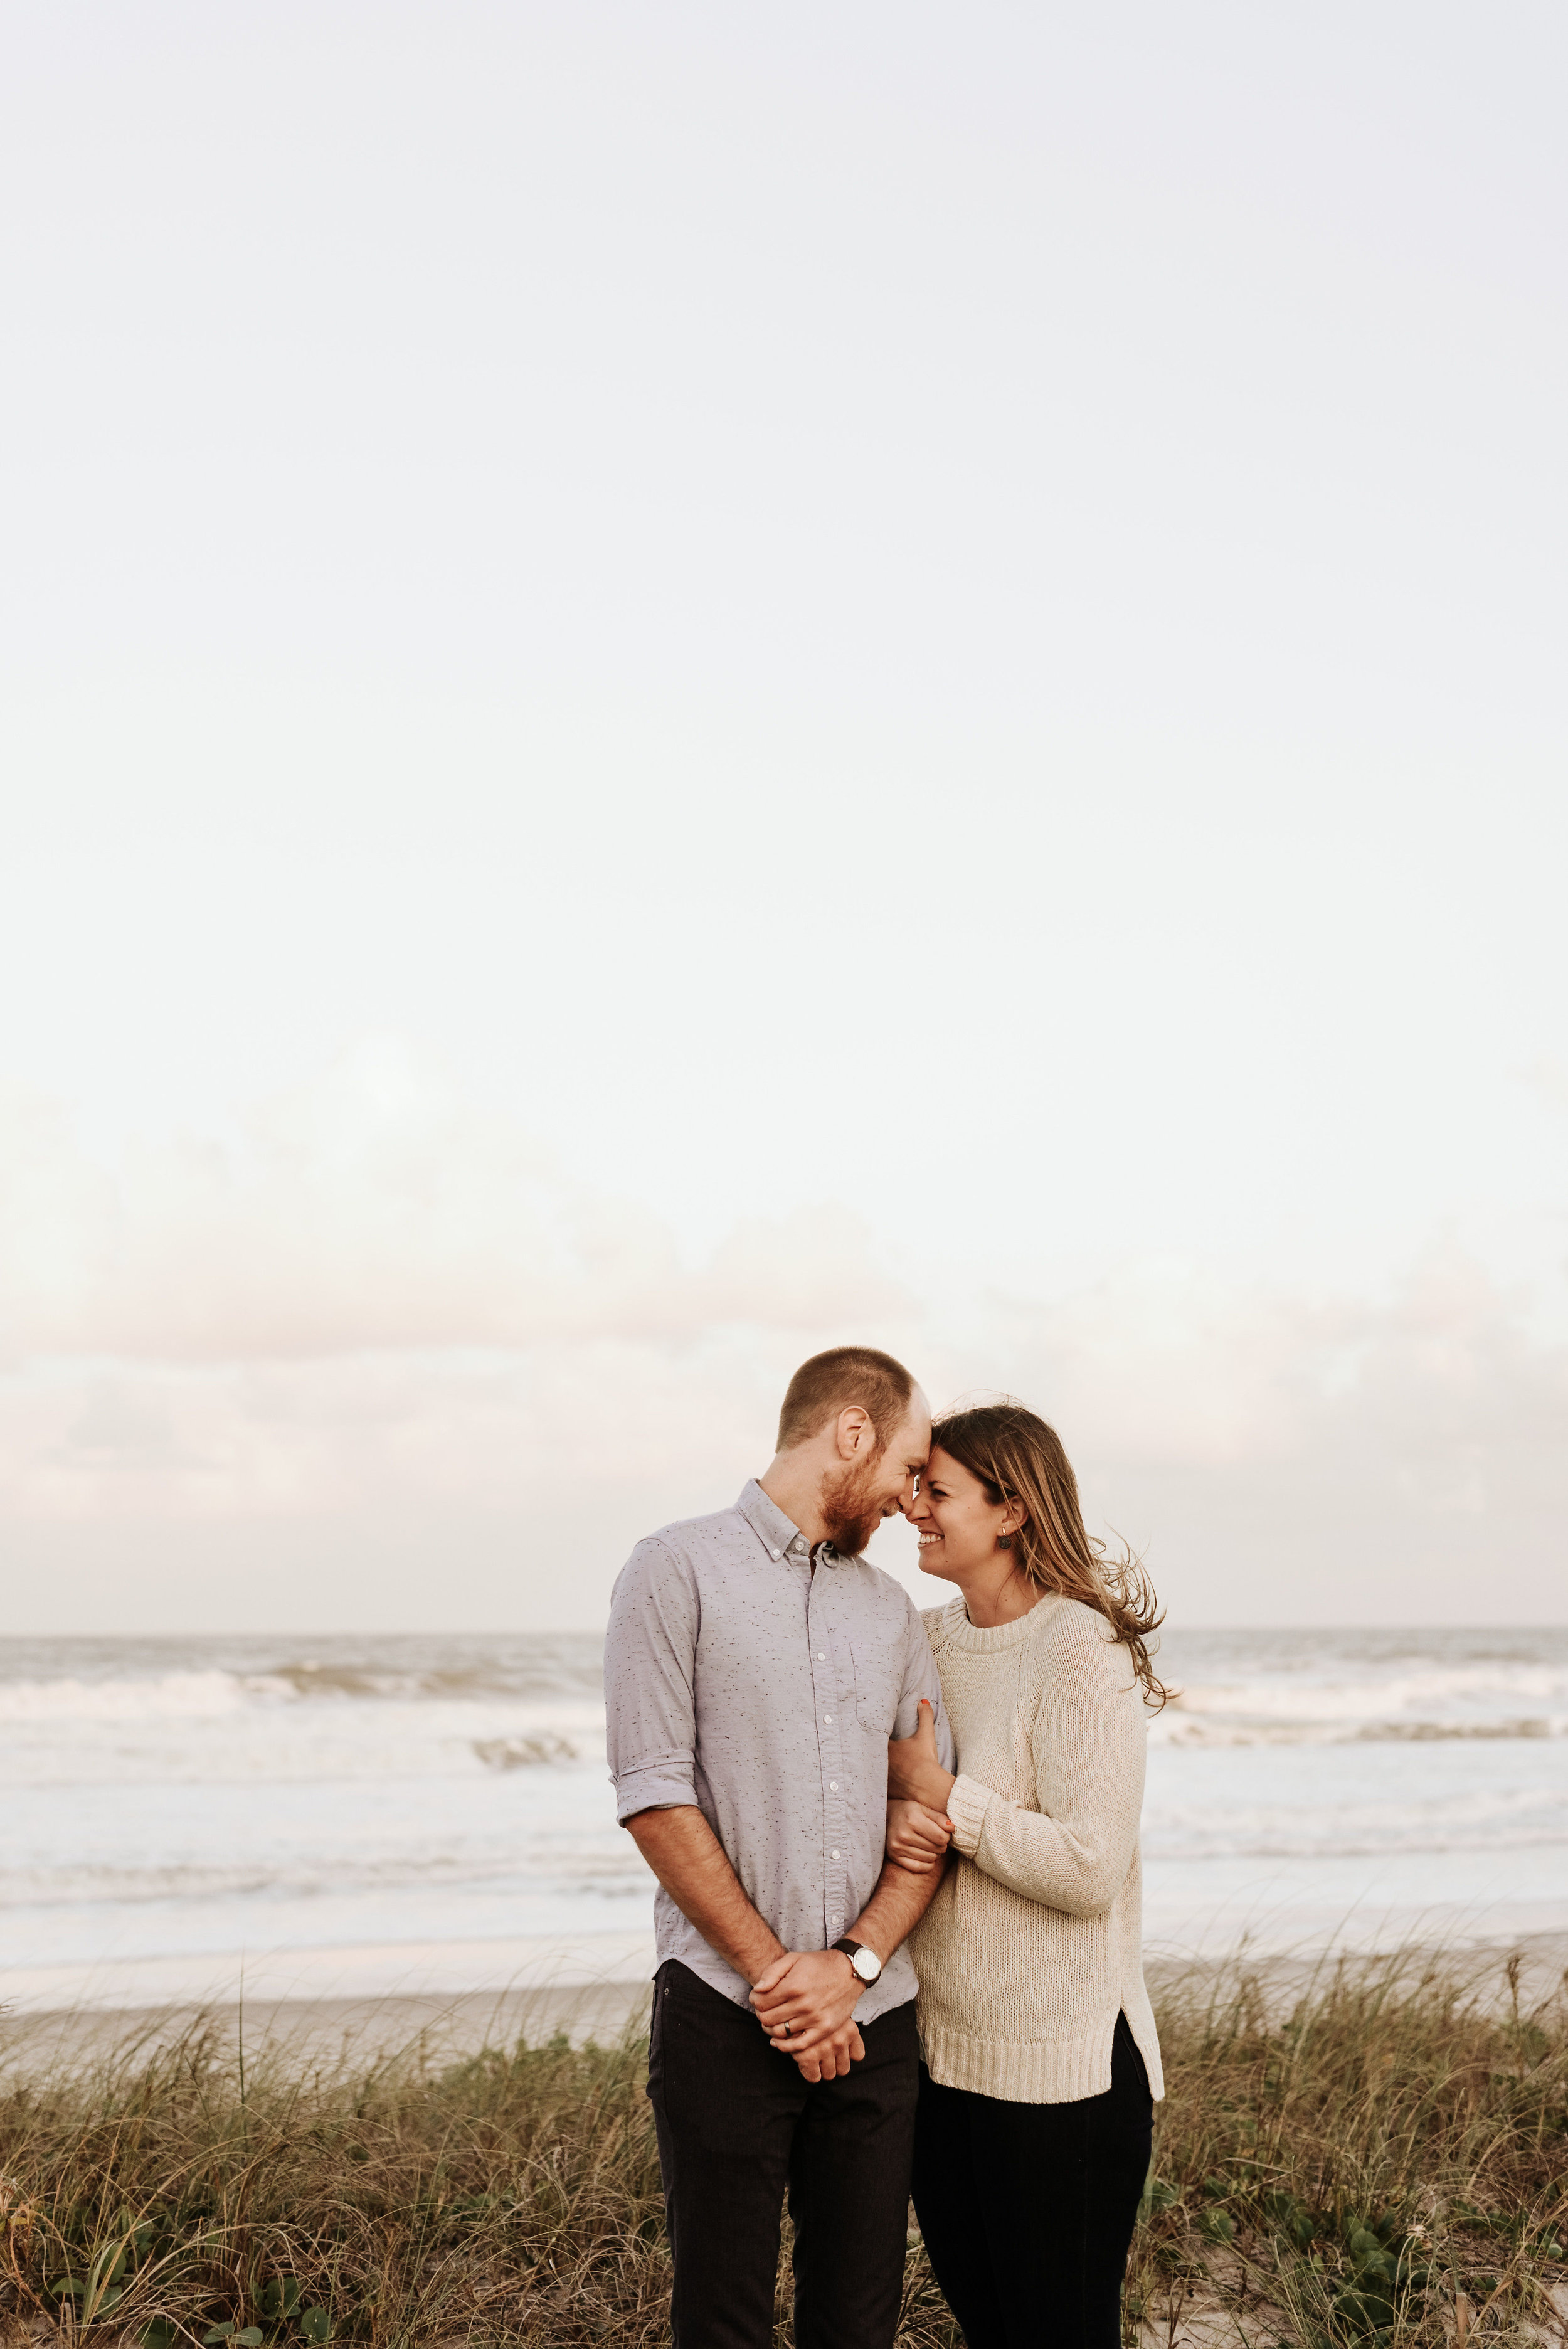 Courtney_Luke_Wedding_Engagement_Session_Cocoa_Beach_Florida_Photography_by_V_4800.jpg